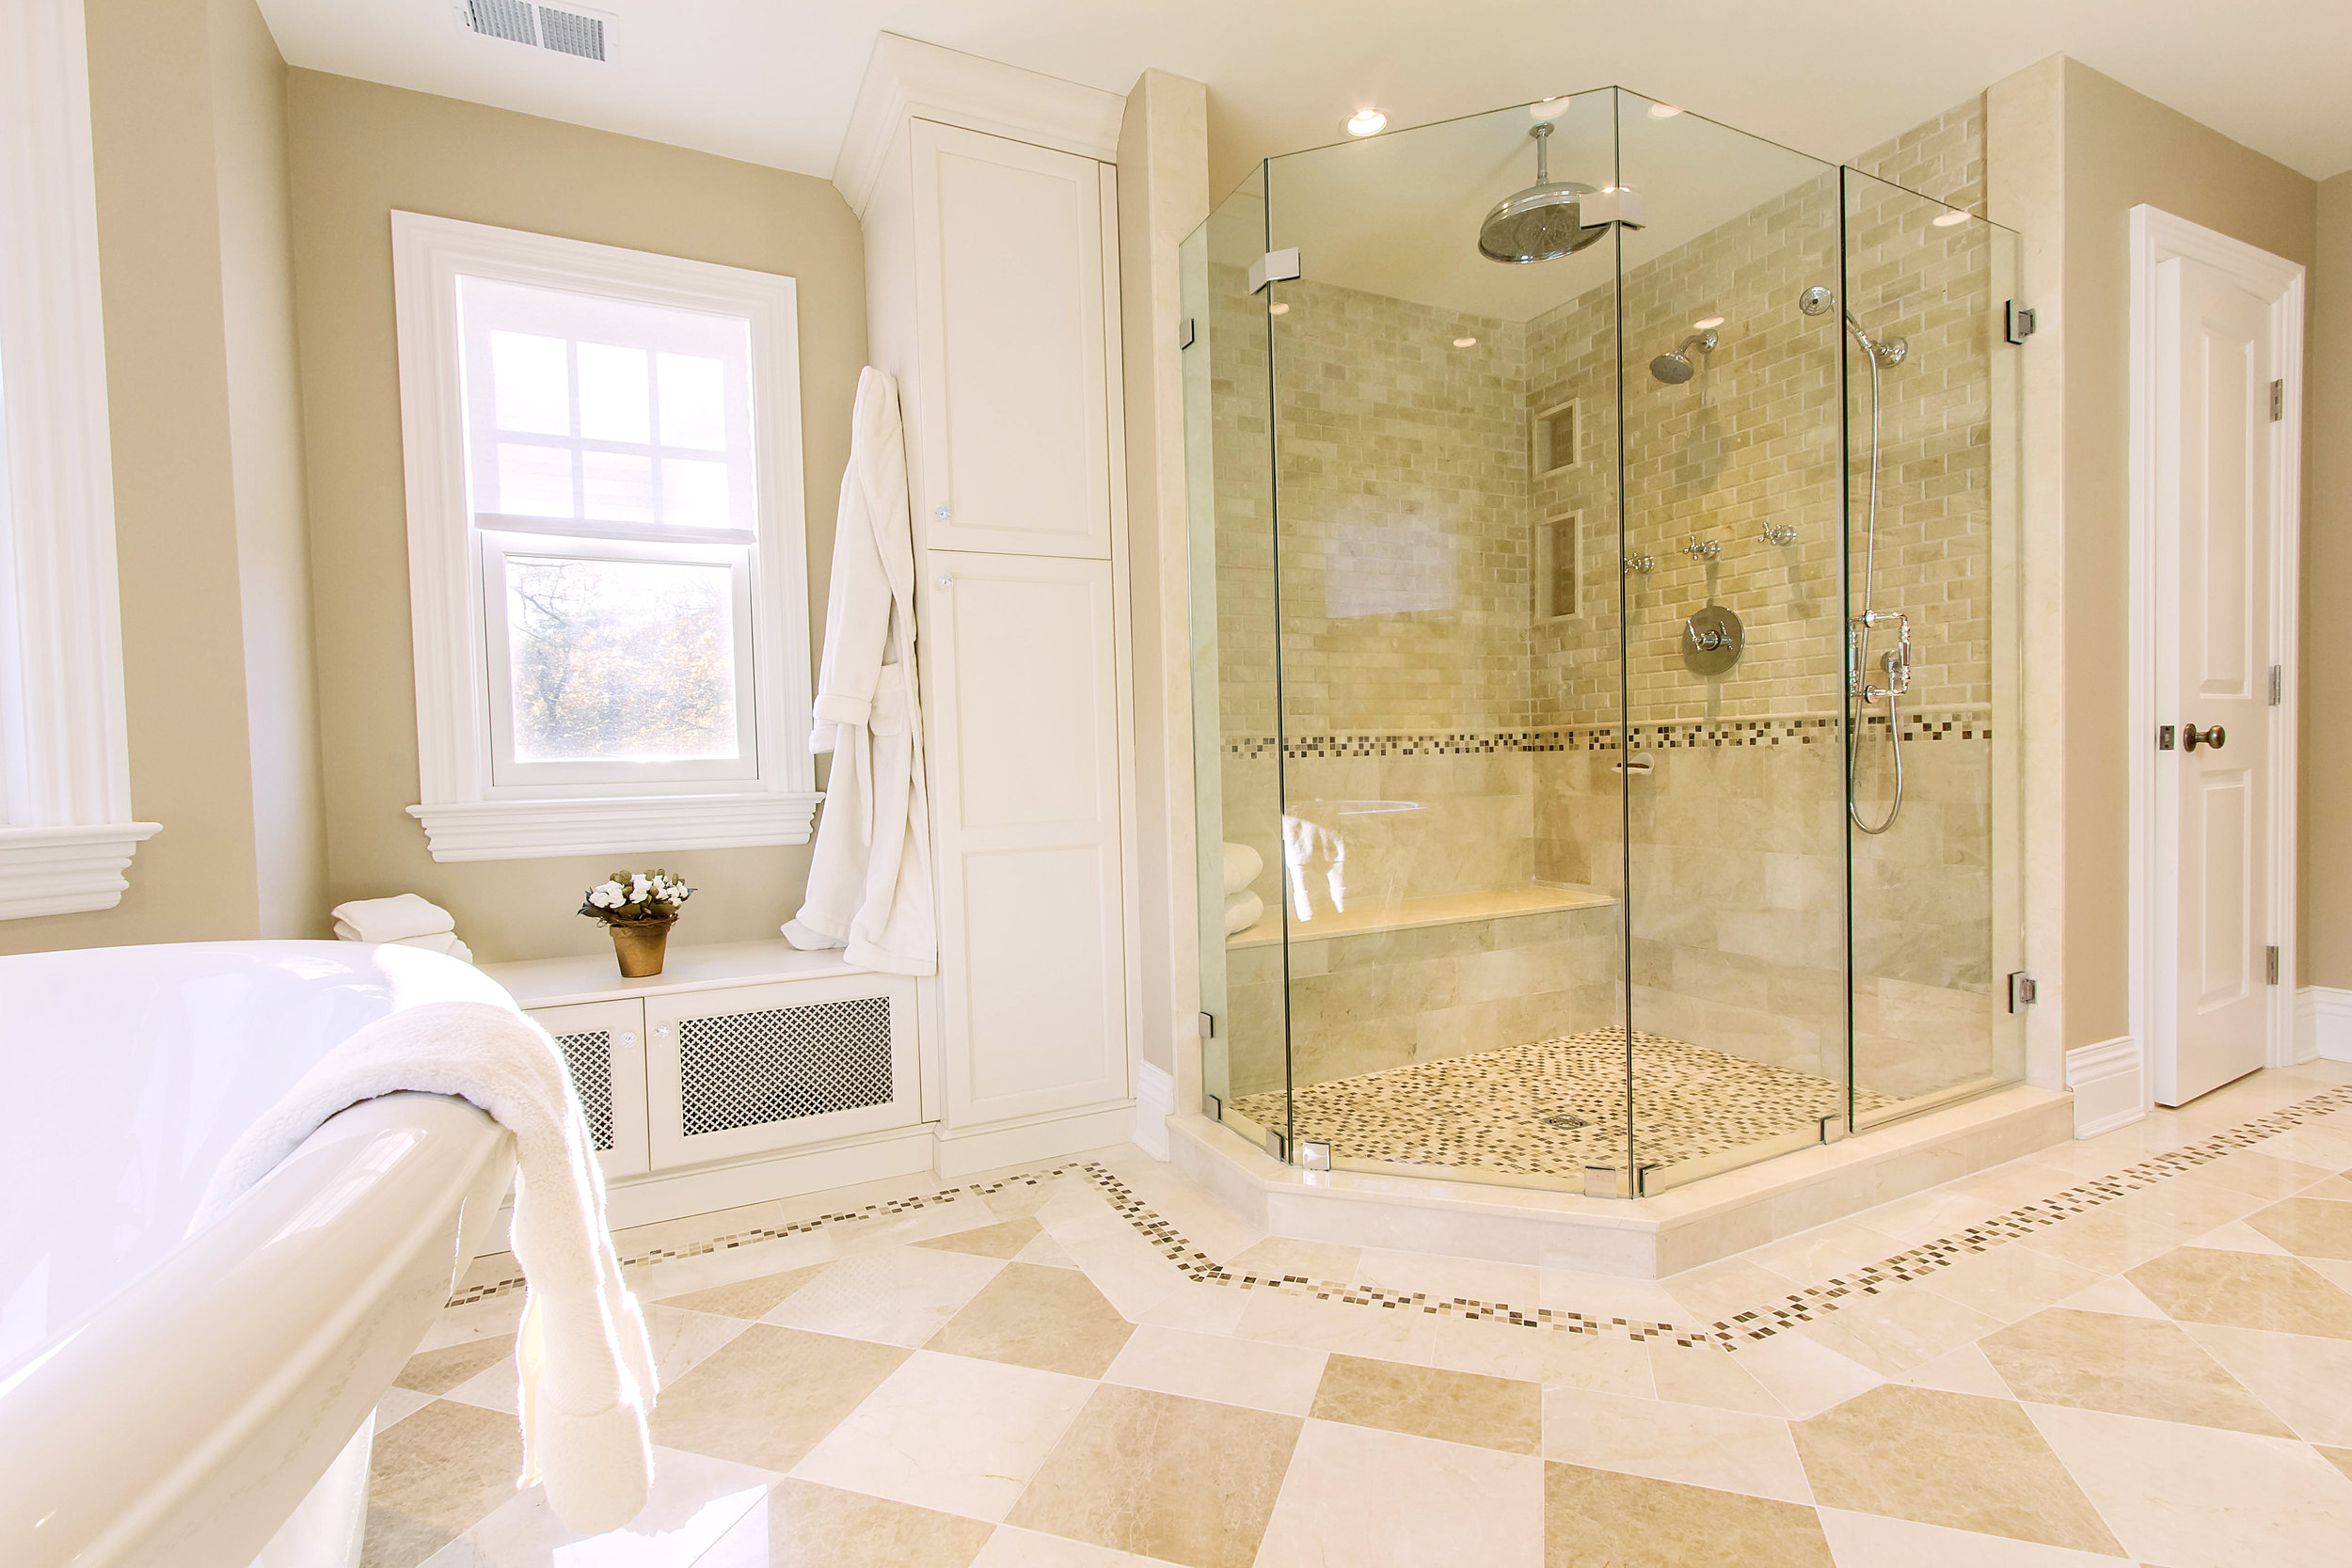 Luxurious bathroom with glass walled shower